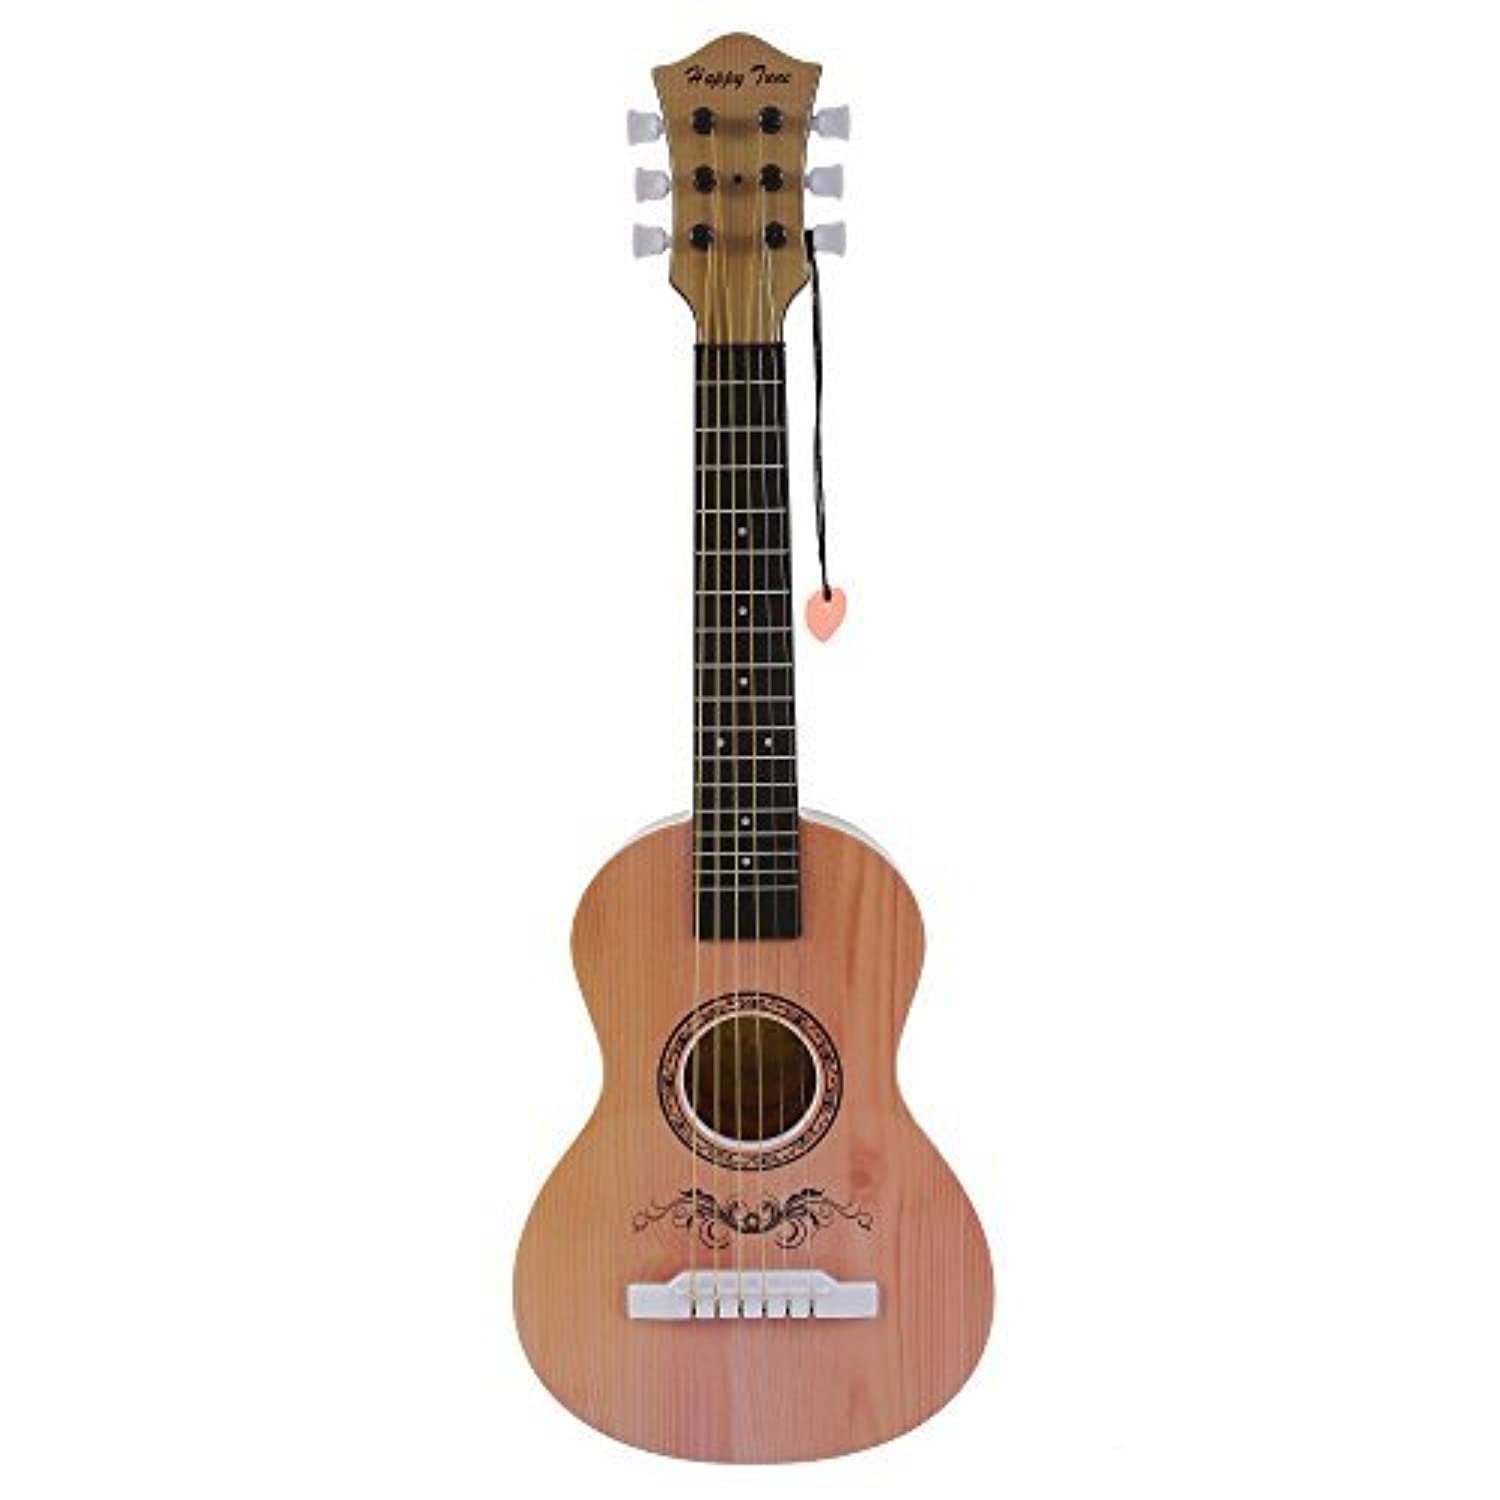 Happy Tune 6 String Acoustic Guitar Toy for Kids with Vibrant Sounds and Tunable Strings (Natural) [並行輸入品]